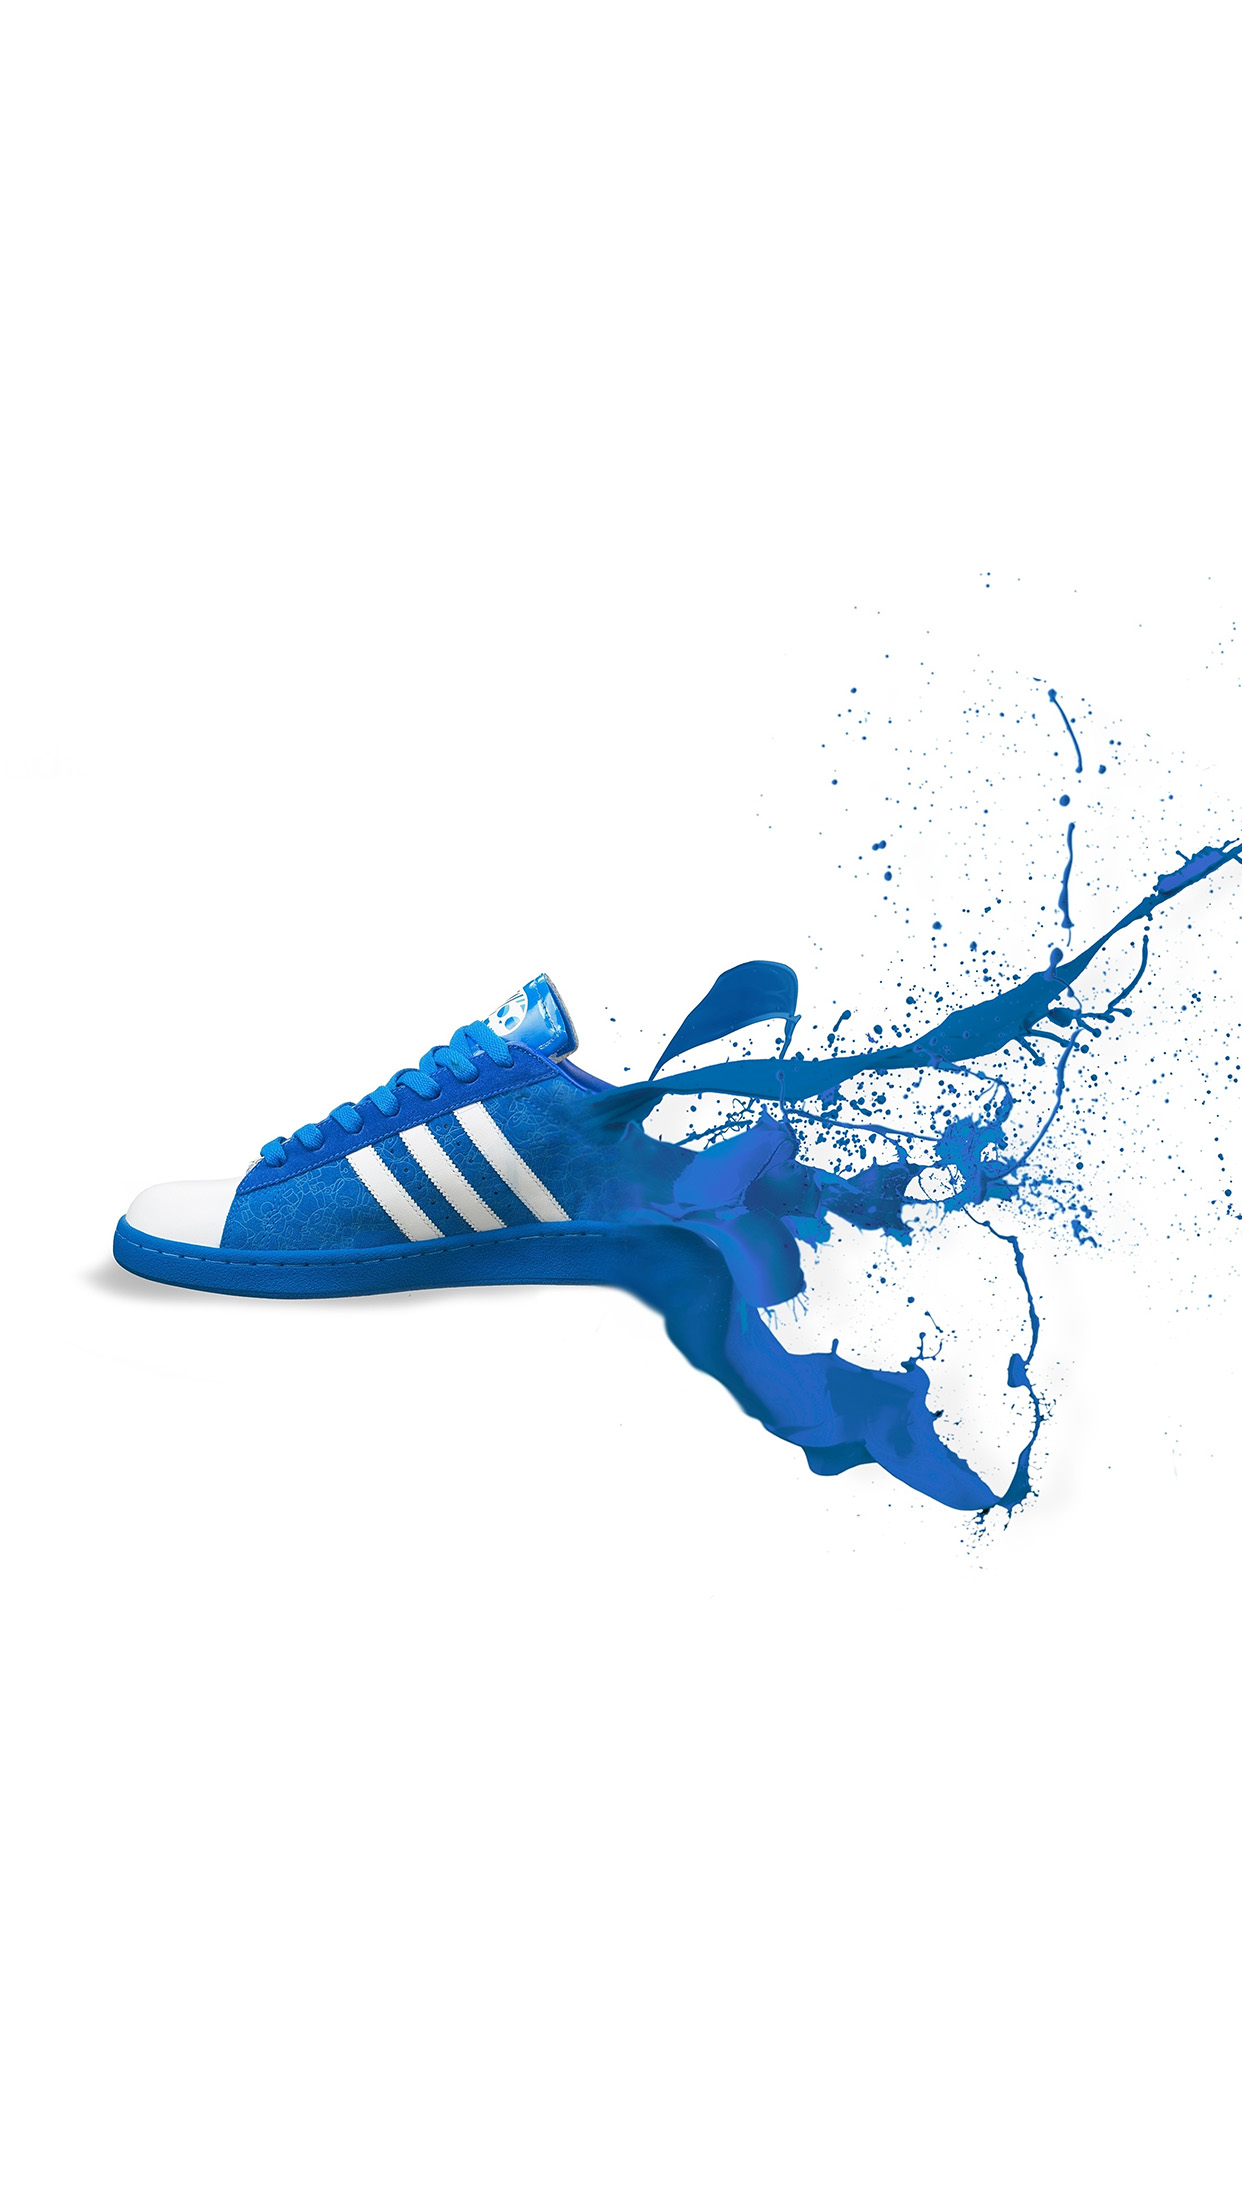 Iphone7papers Am05 Adidas Blue Shoes Sneakers Logo Art